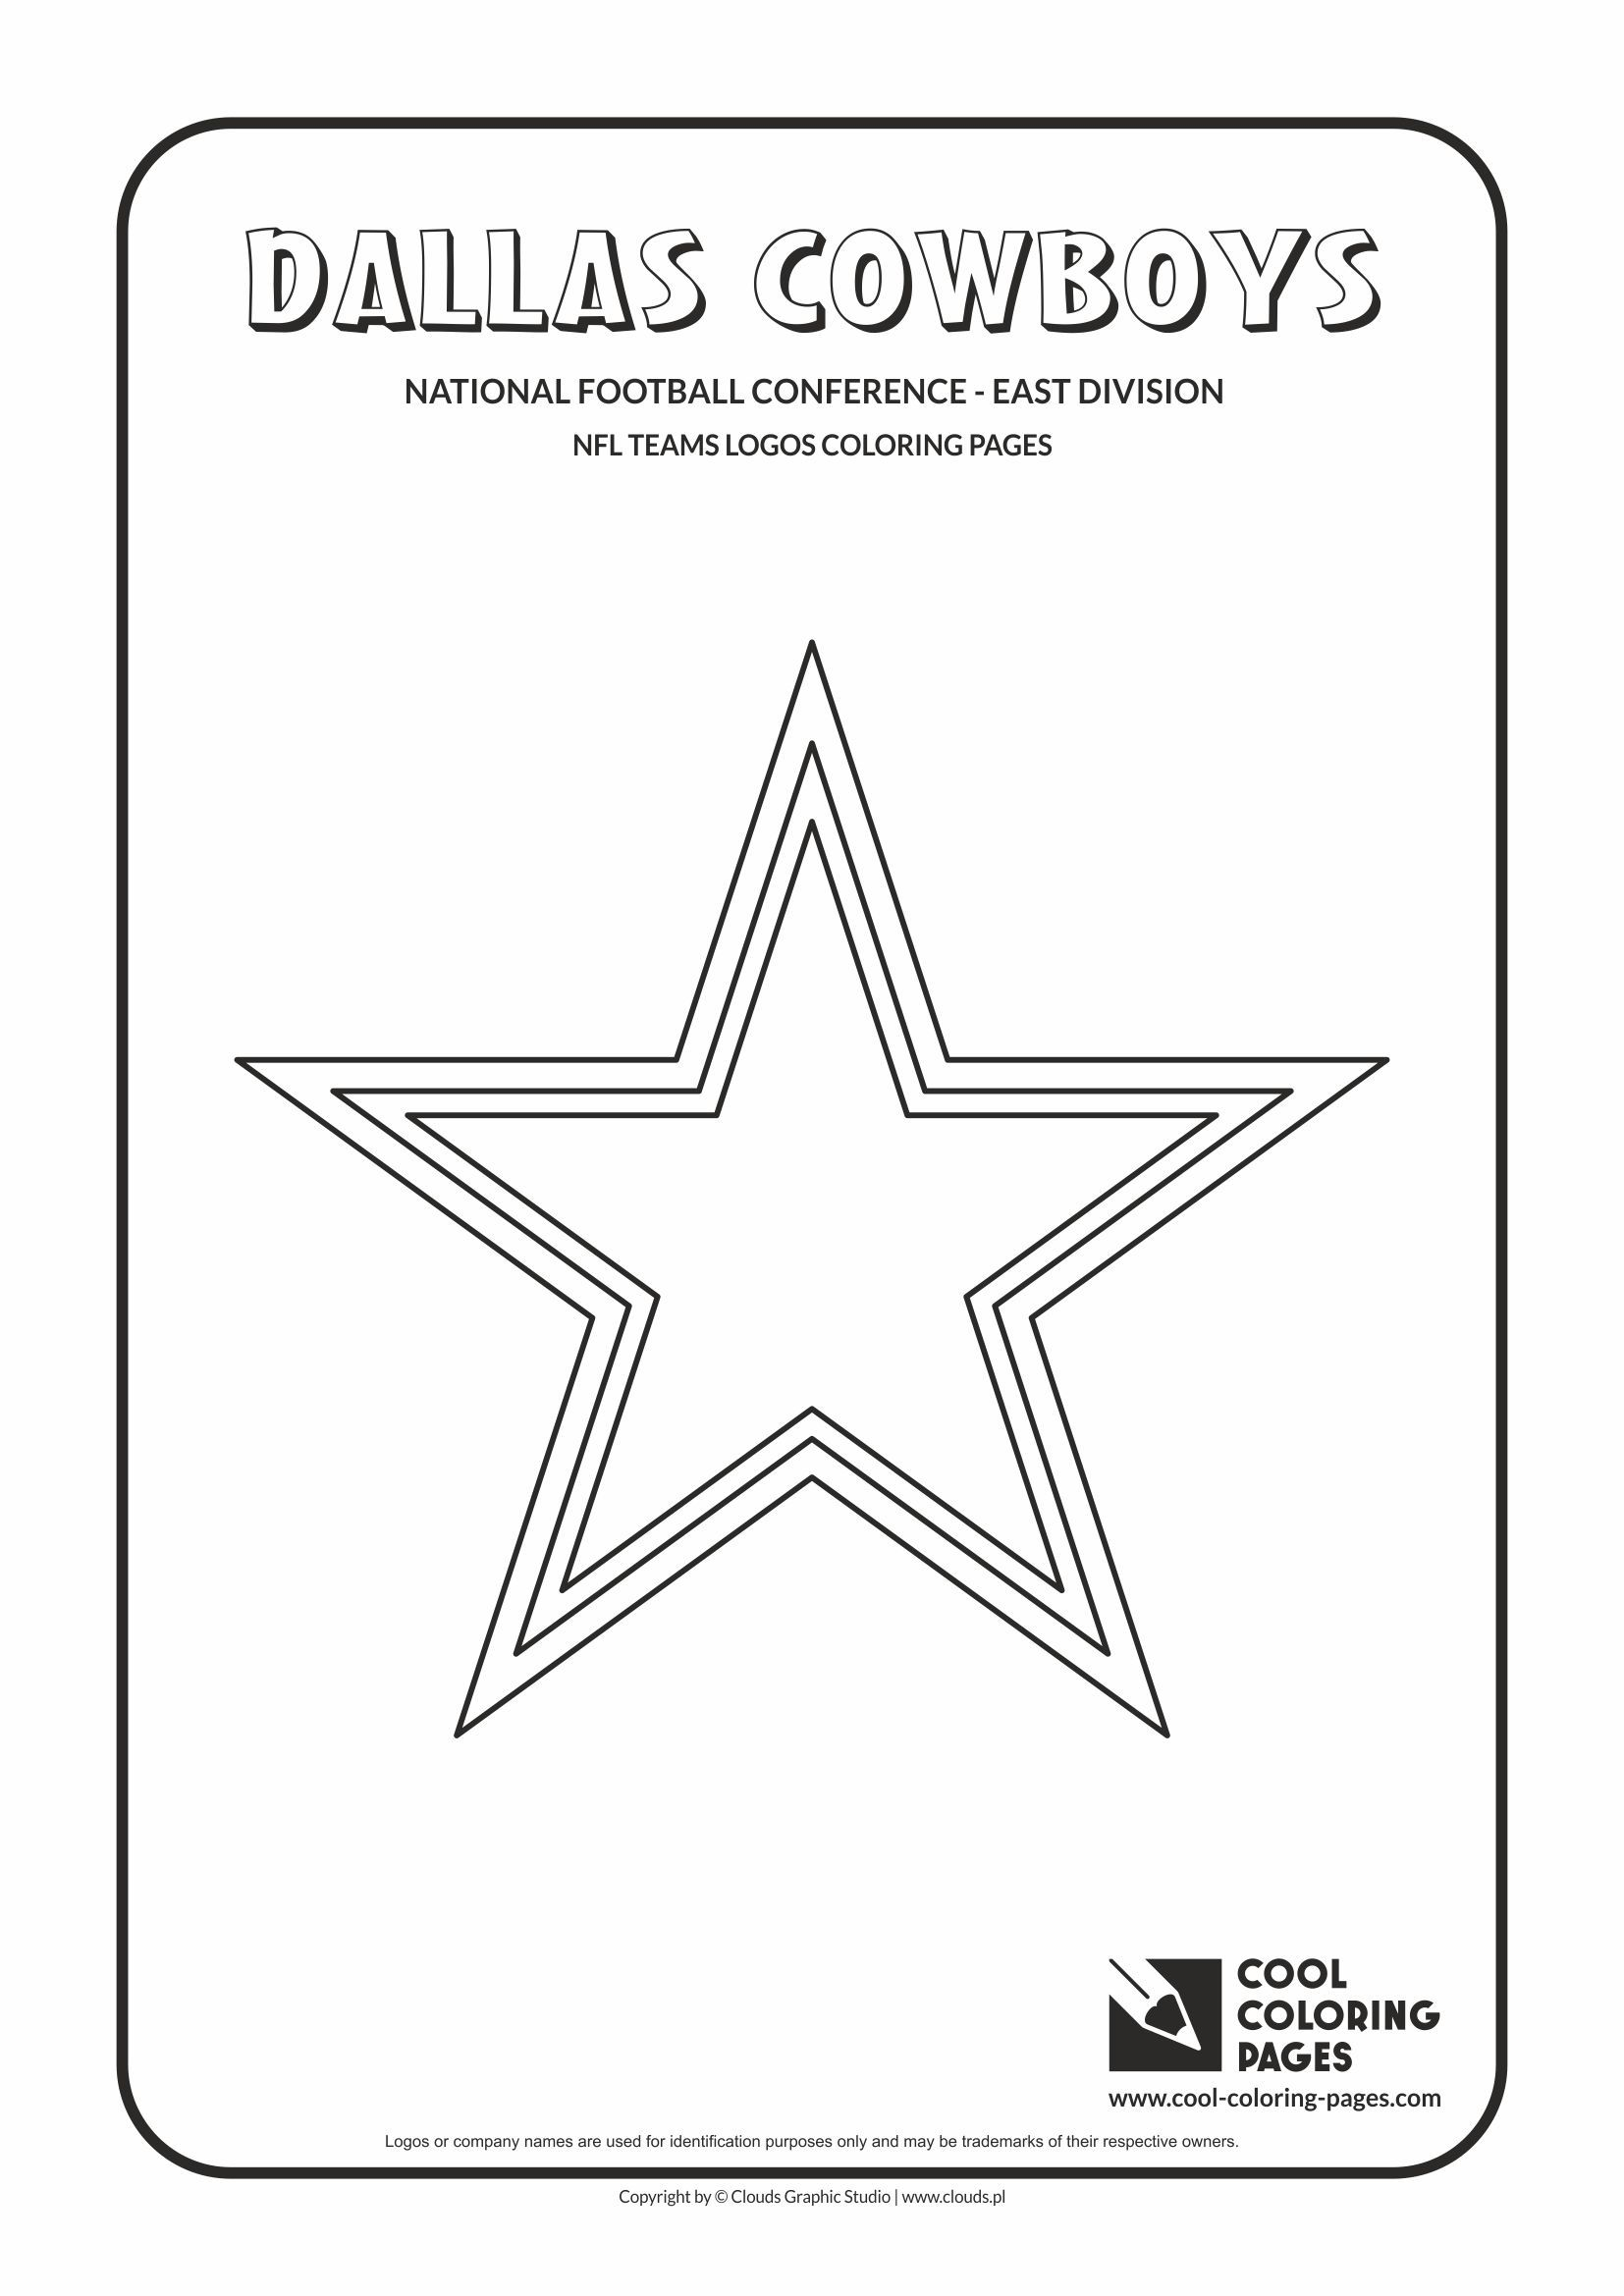 Cool Coloring Pages - Nfl American Football Clubs Logos